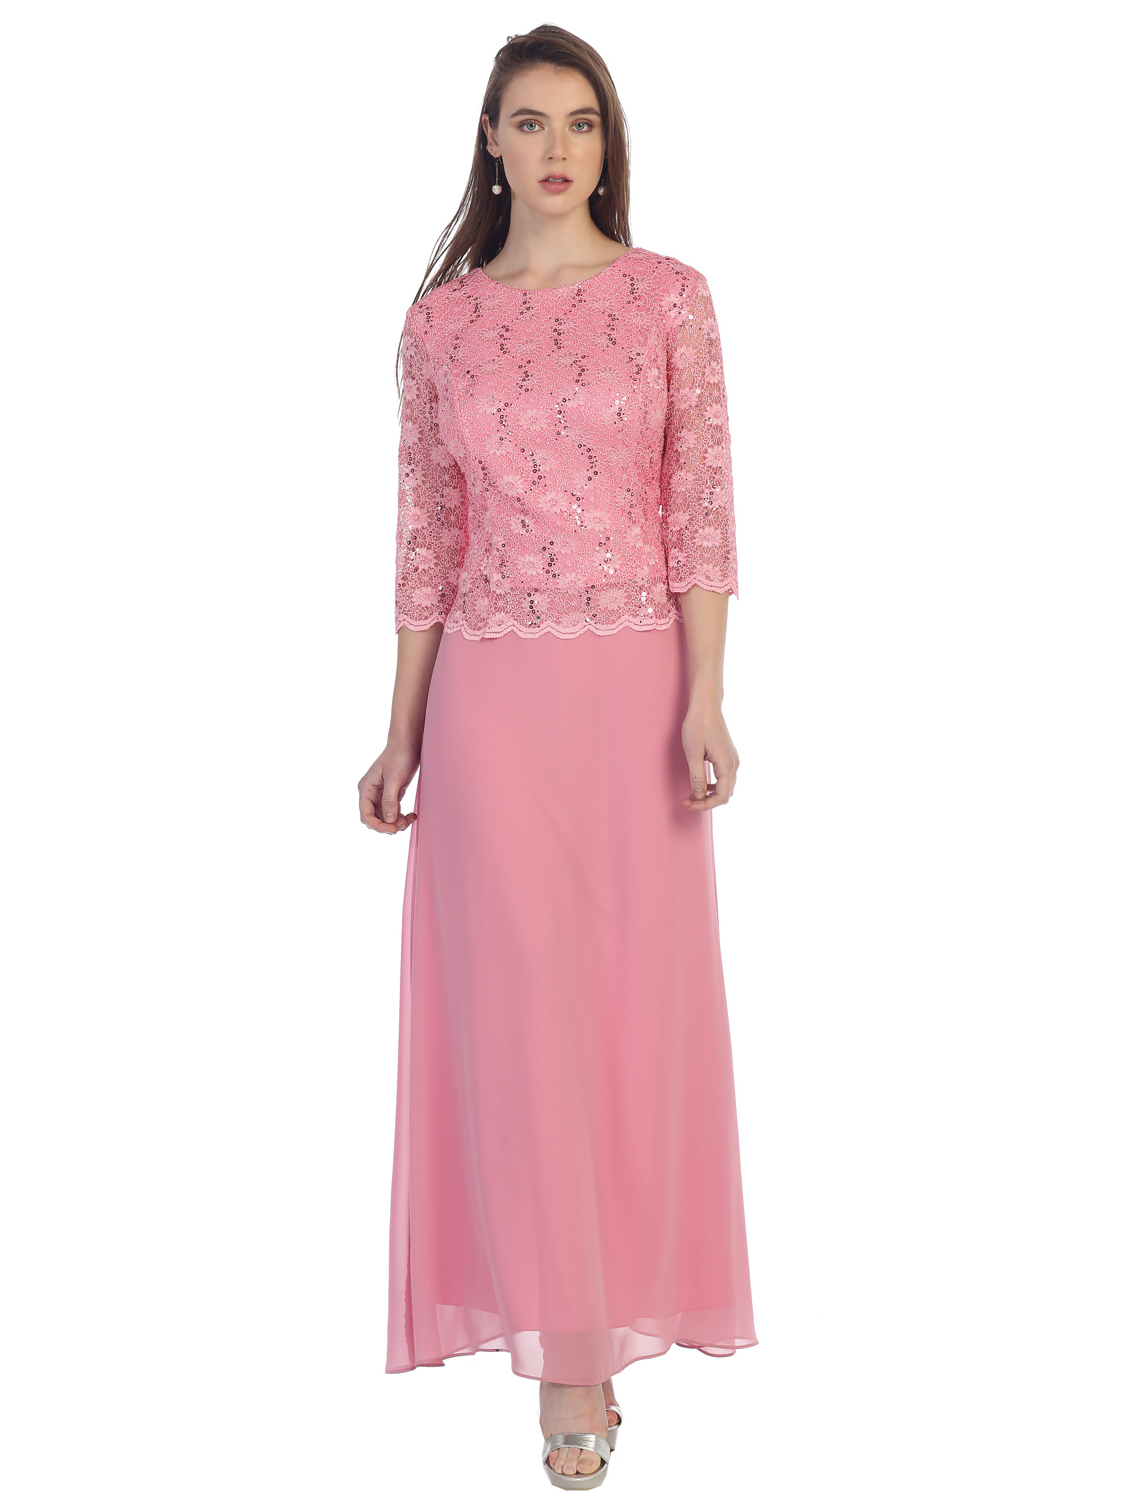 Party dresses for womens in pakistan